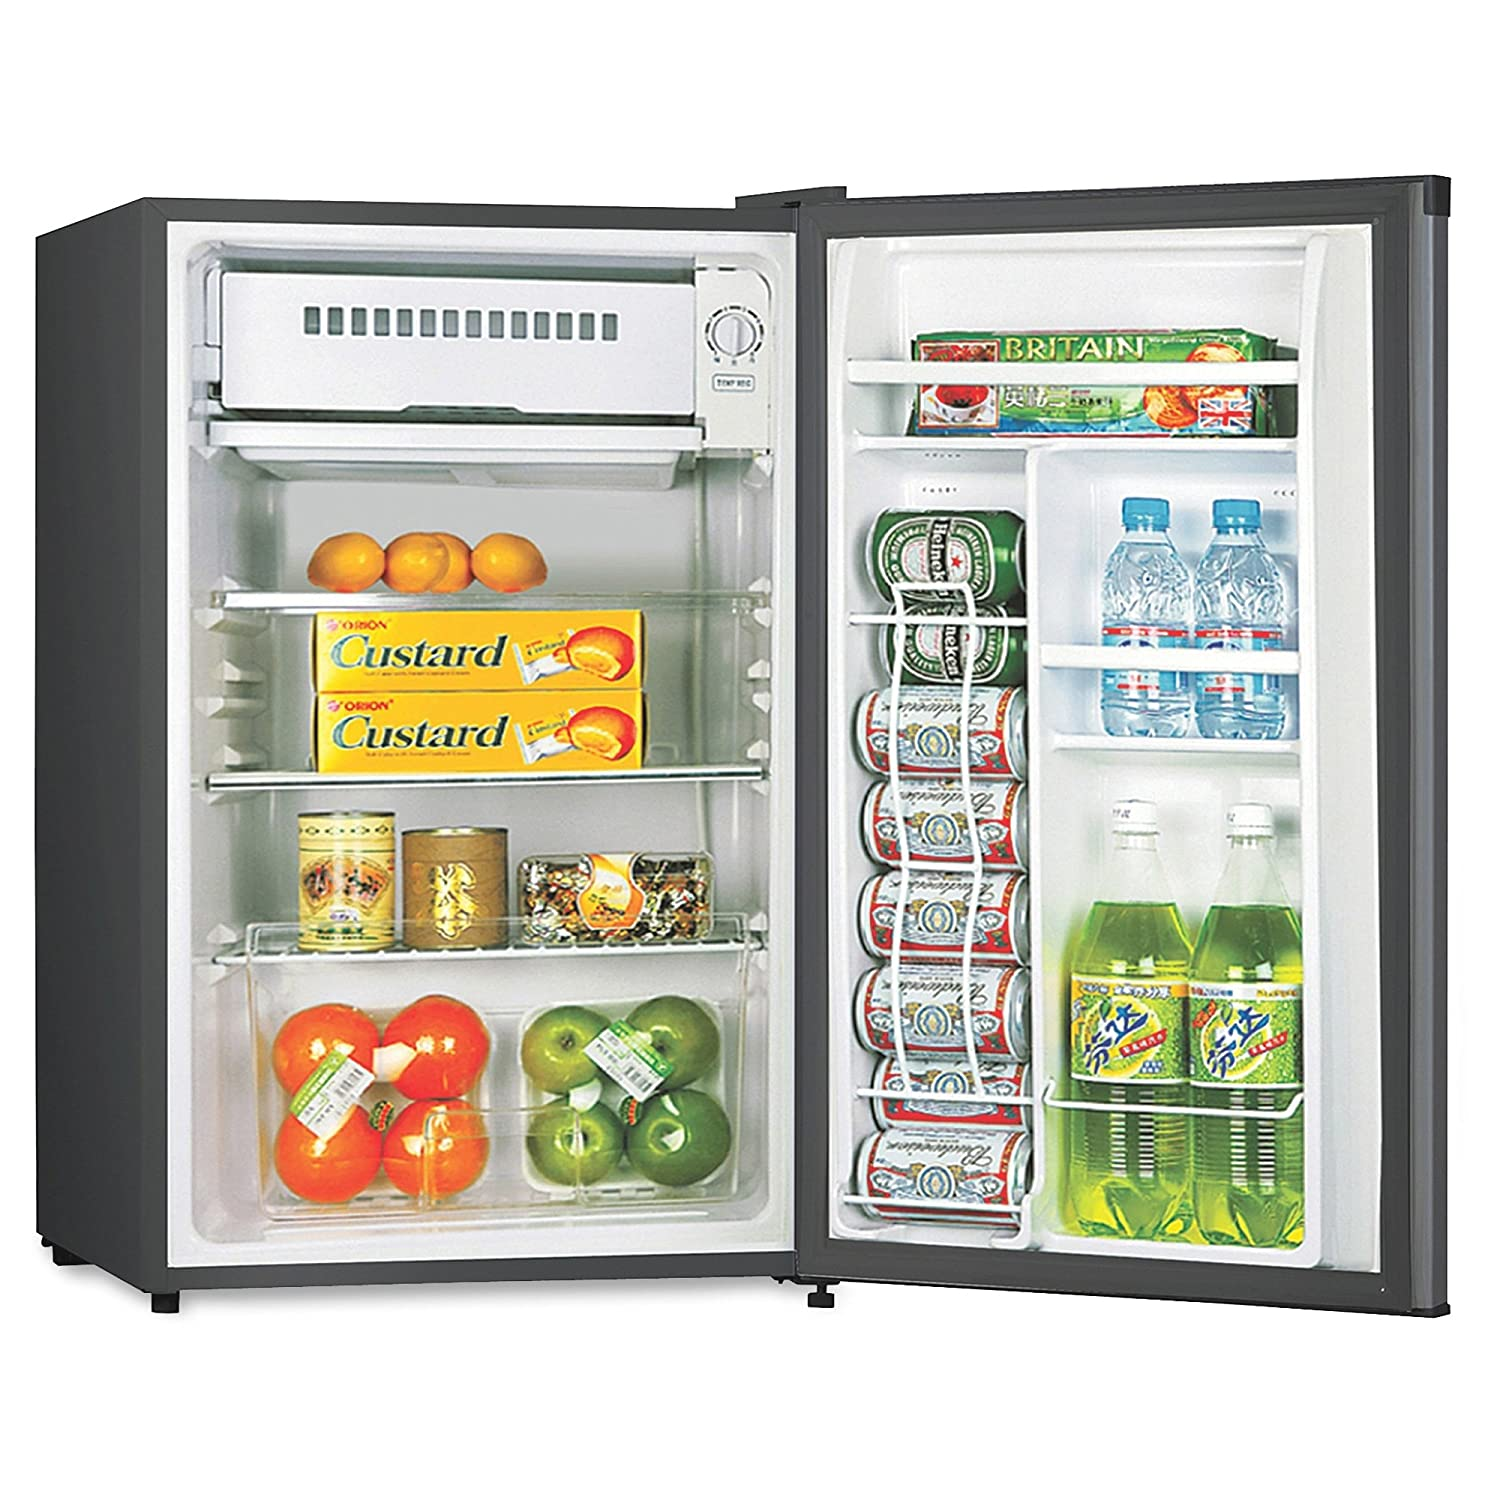 10 Best Compact Refrigerators -Jan. 2018 Top Rated 2018 List | 10 ...